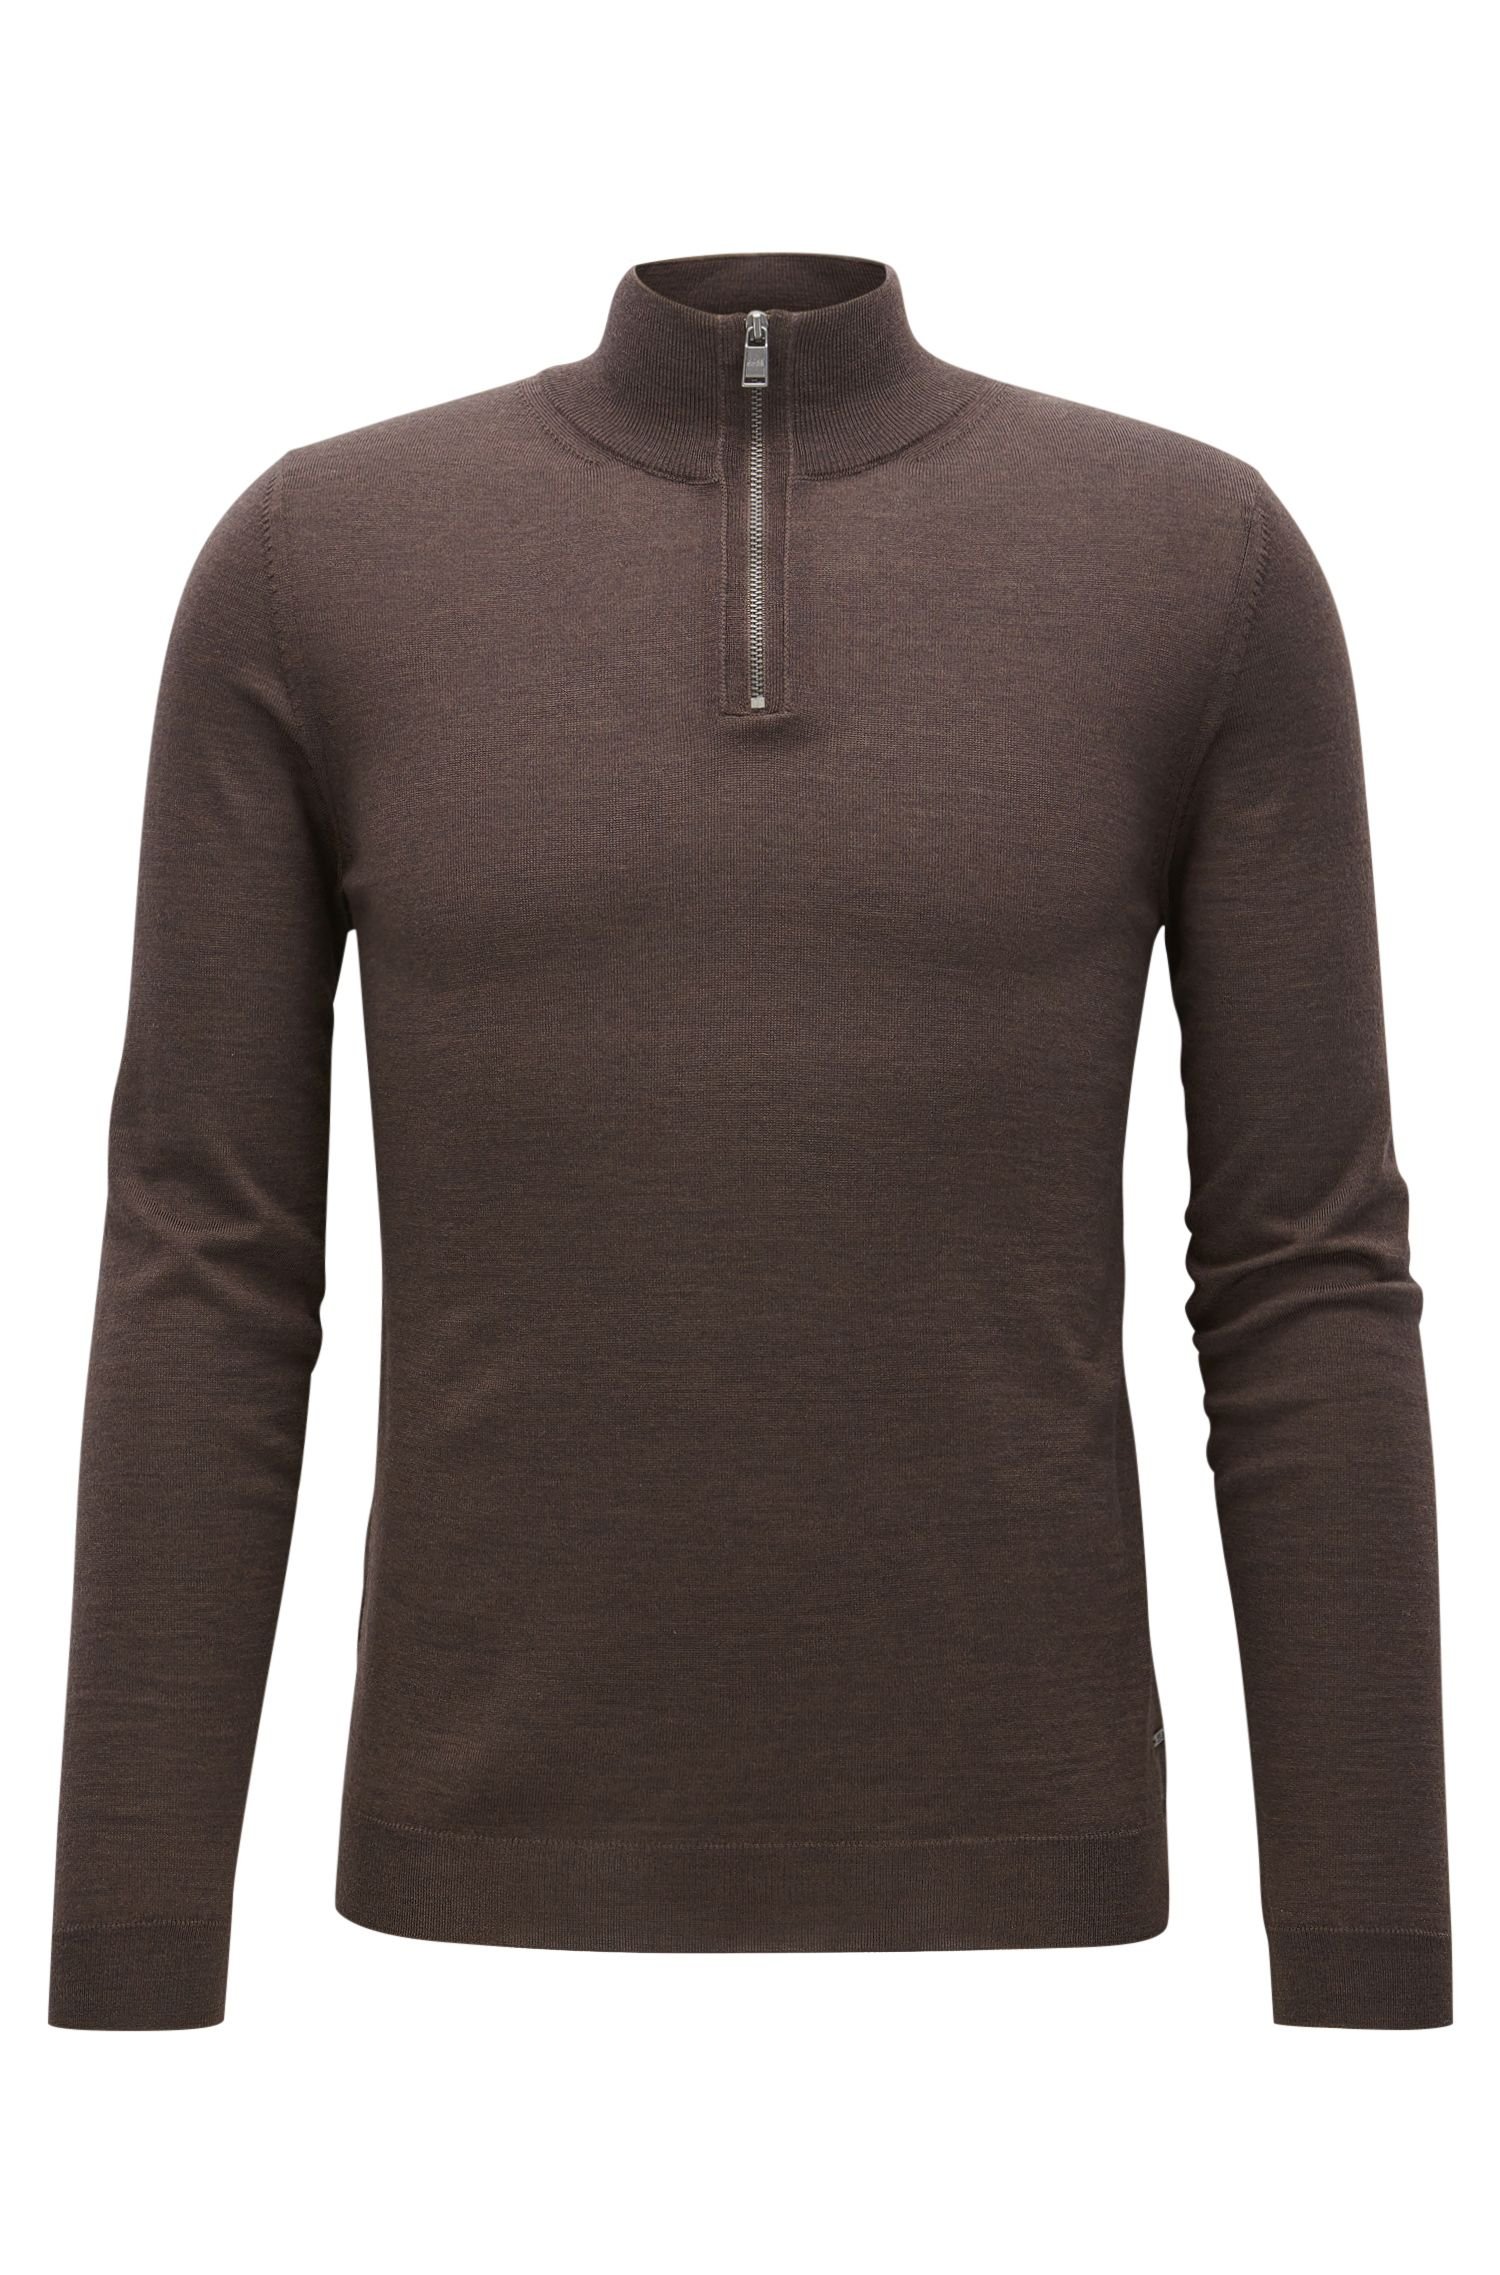 Slim-fit zip-neck sweater in merino wool